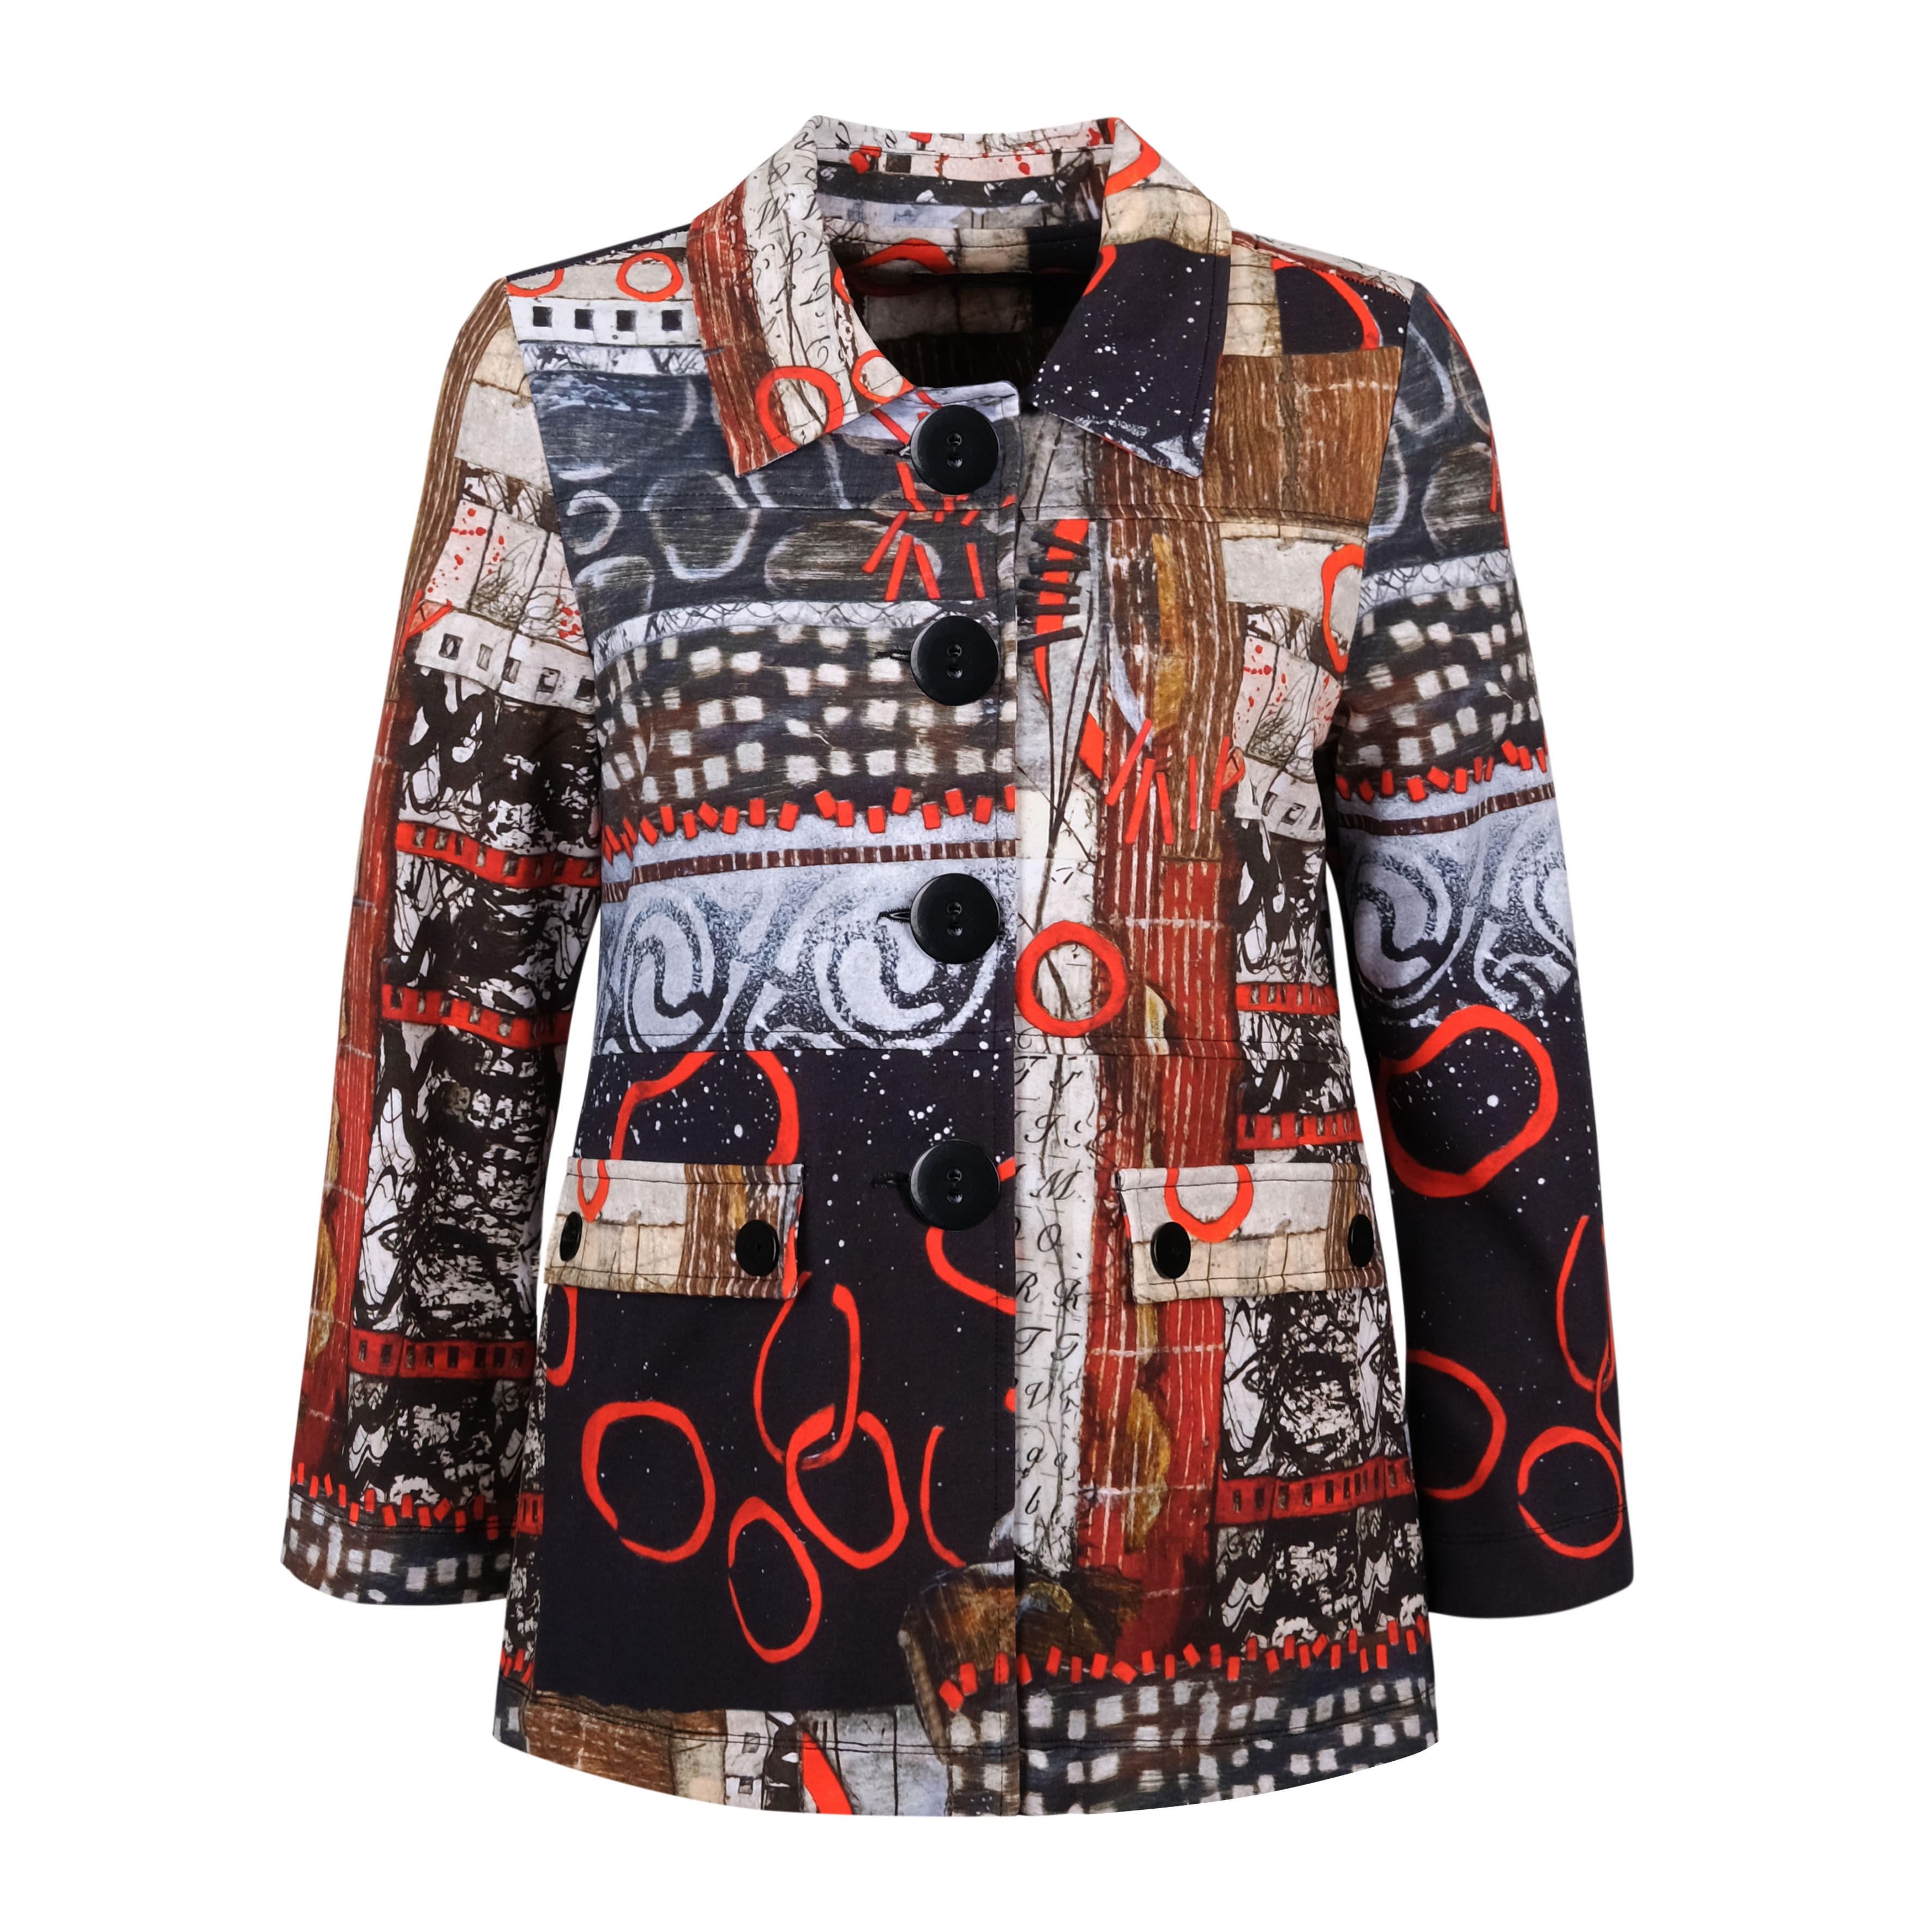 Simply Art Dolcezza: Rising Up In Color Soft Denim Flared Art Jacket (1 Available at Special Price!) Dolcezza_SimplyArt_70716